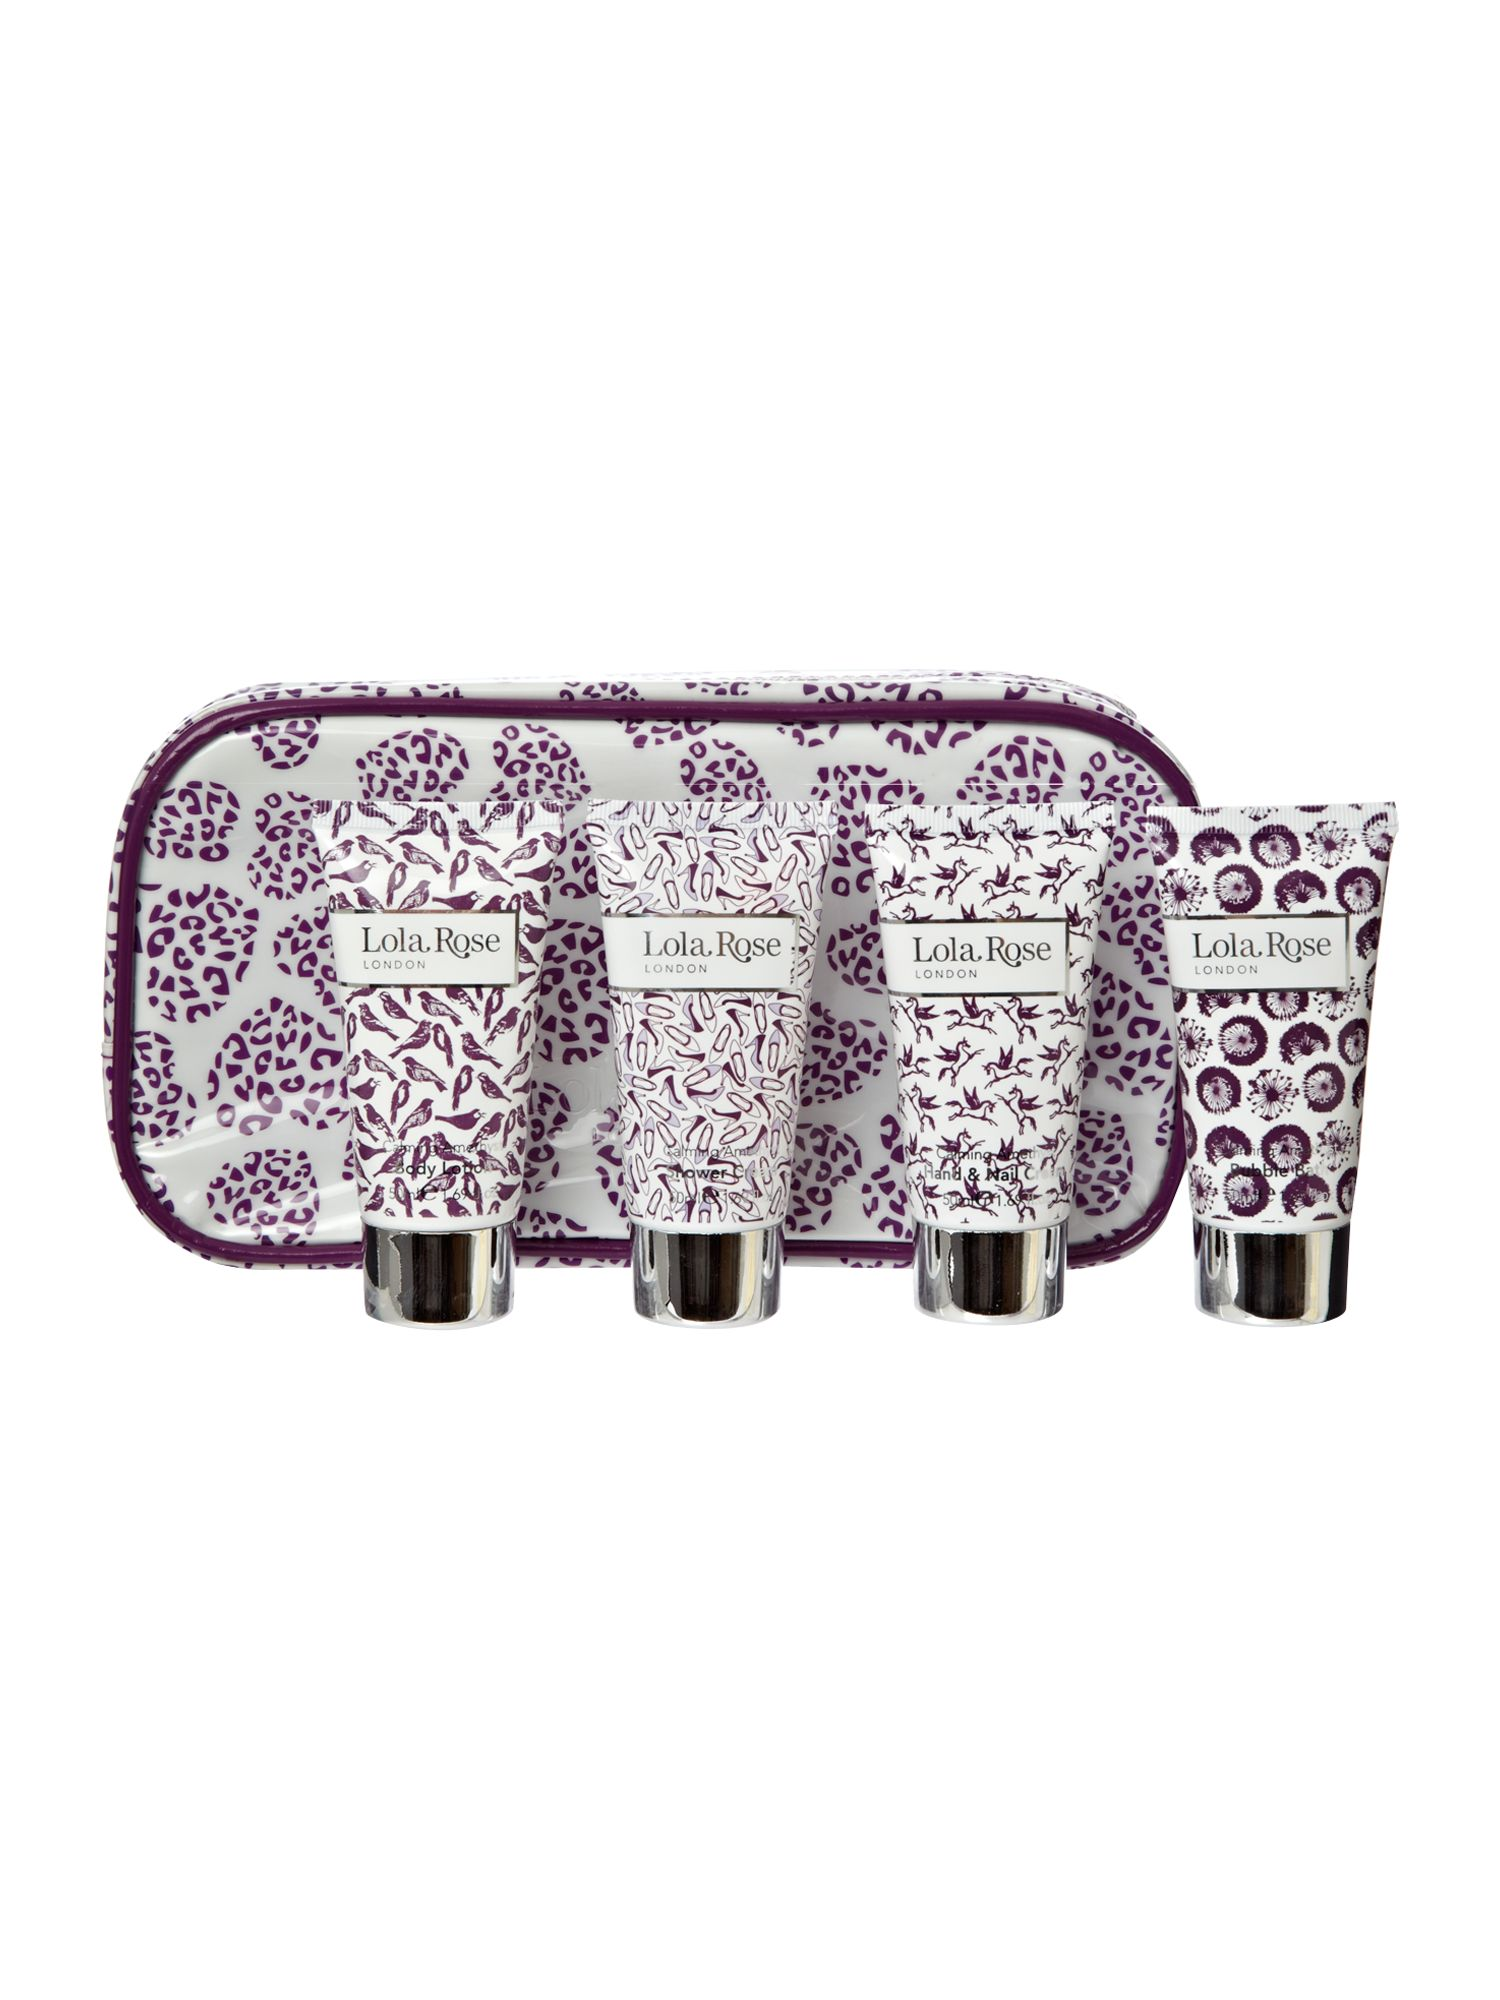 Calming Amethyst Bathing Travel Bag